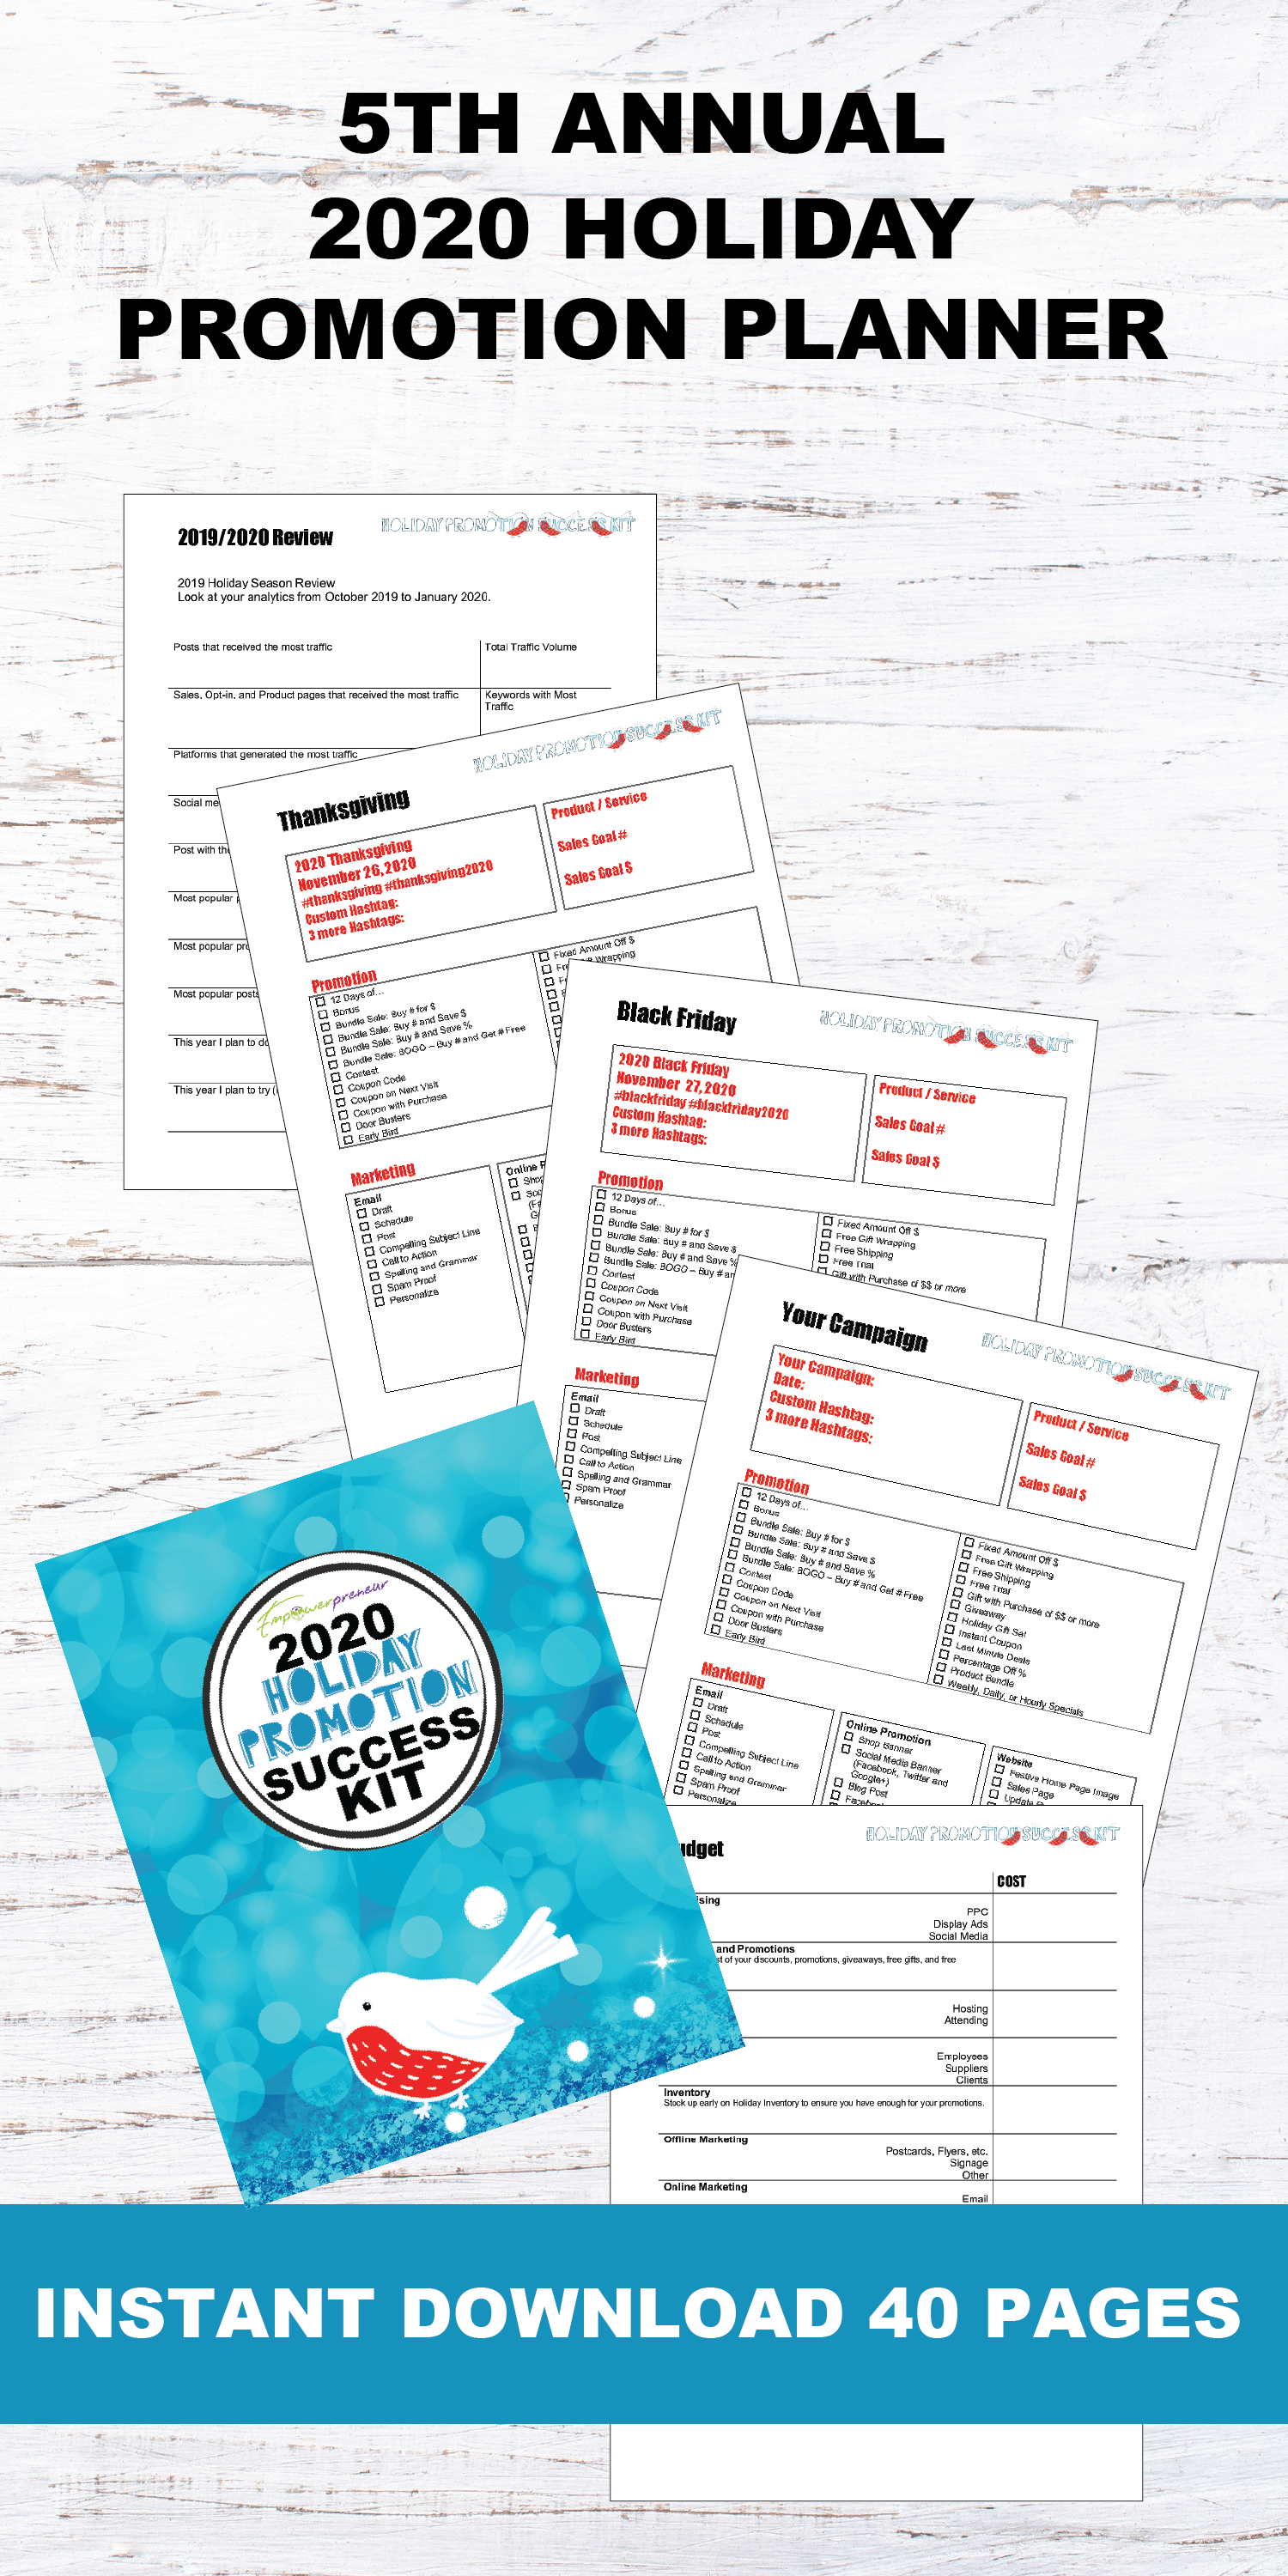 2020 Holiday Promotion Planner Pdf Dwainia Grey